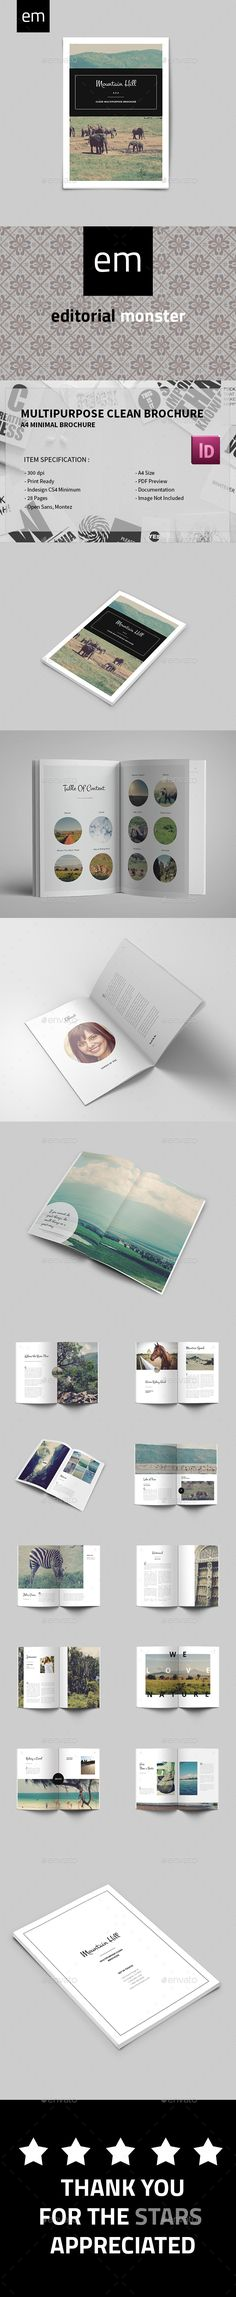 Multipurpose Clean Brochure Template InDesign INDD. Download here: http://graphicriver.net/item/multipurpose-clean-brochure/14776742?ref=ksioks